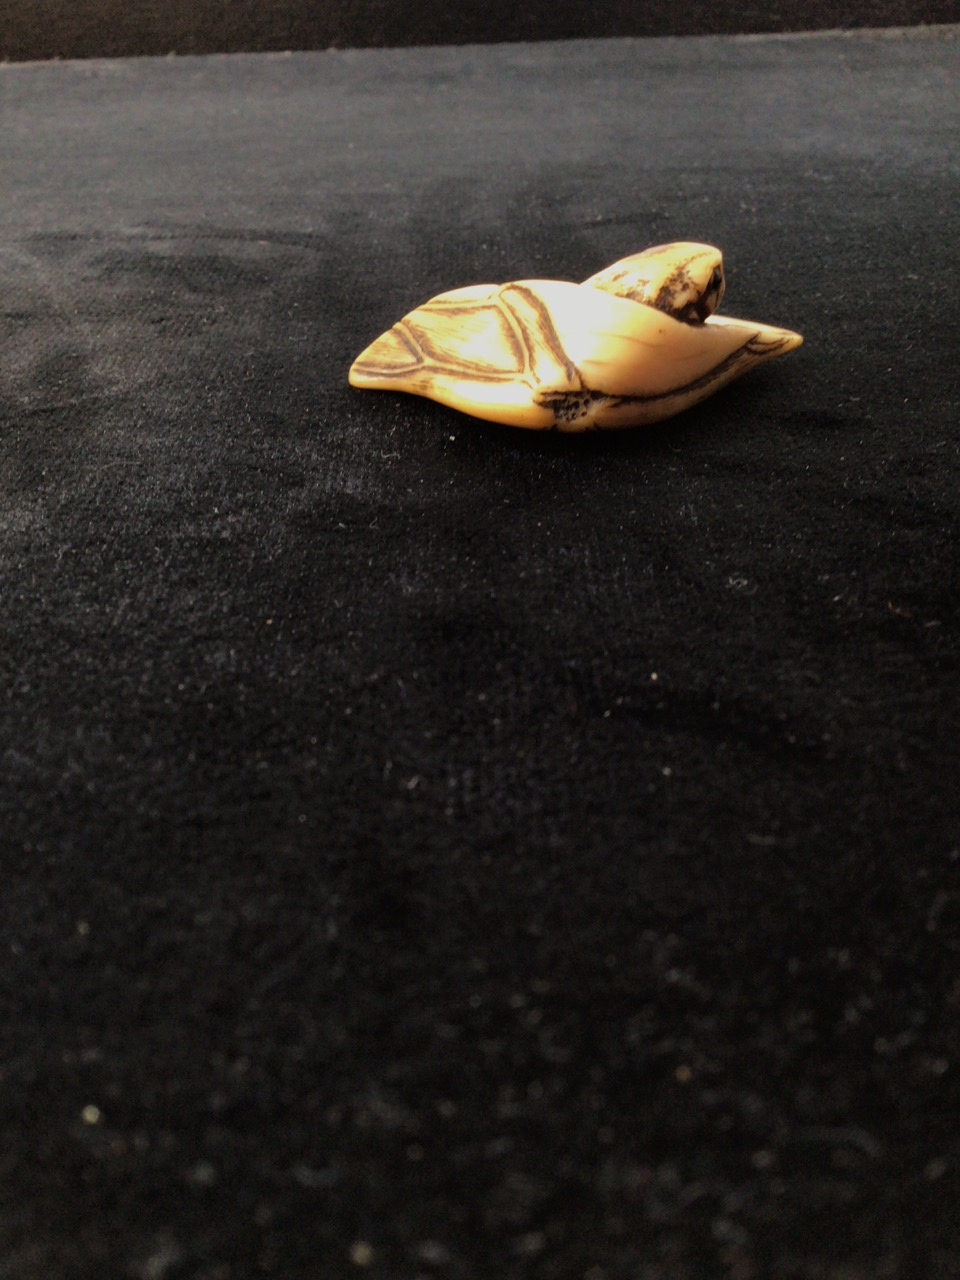 A netsuke of a frog emerging from leaf with two cord holes to rear W:5cm x D:3cm - Image 3 of 4